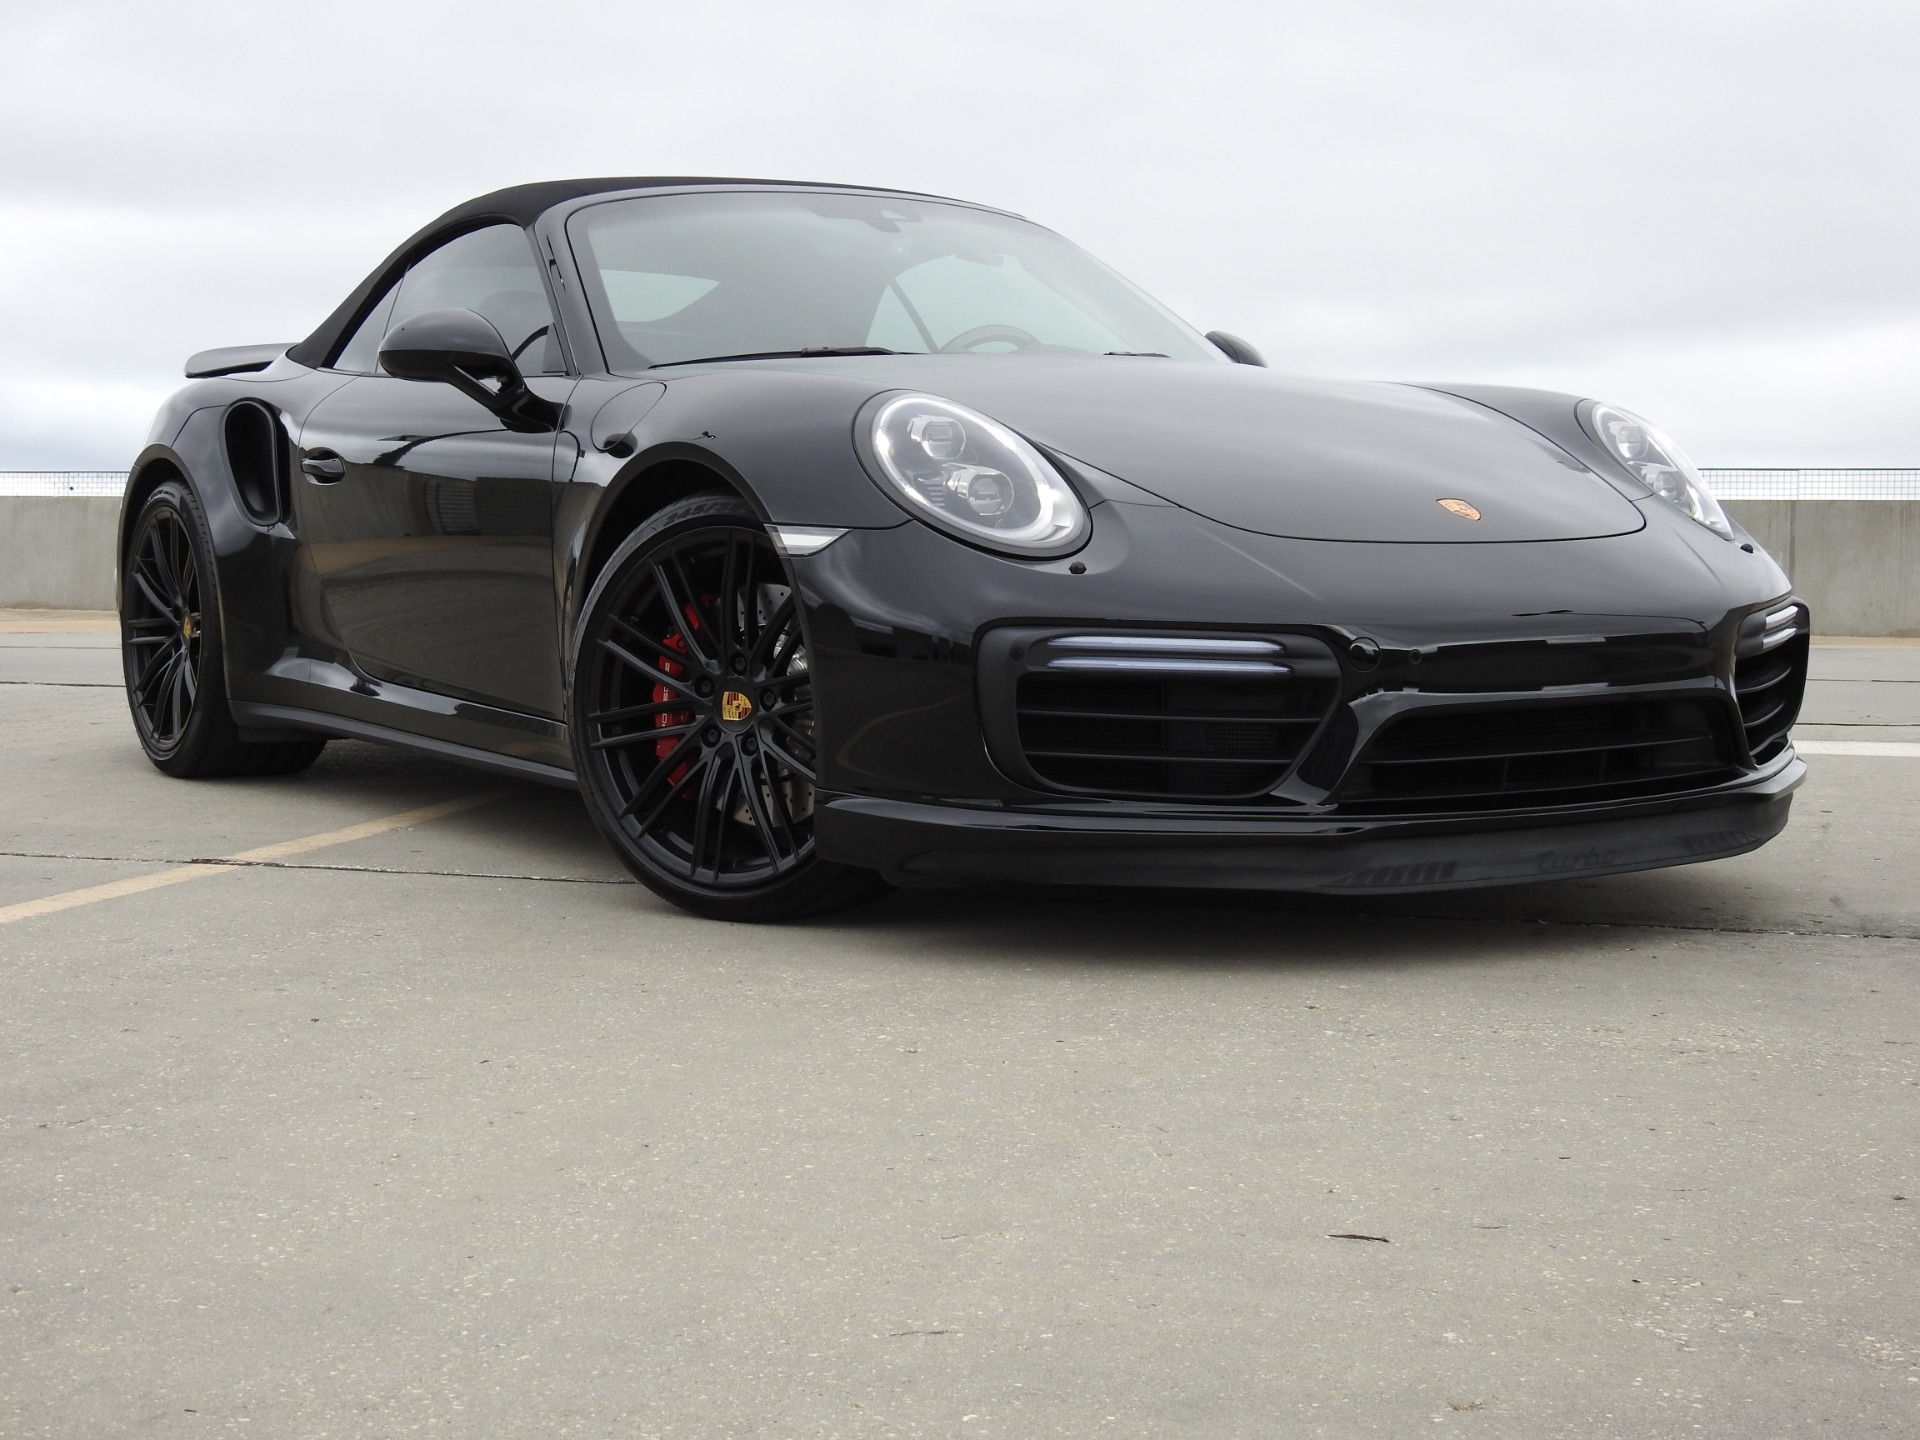 Used-2017-Porsche-911-Turbo-Cabriolet-for-sale-Jackson-MS